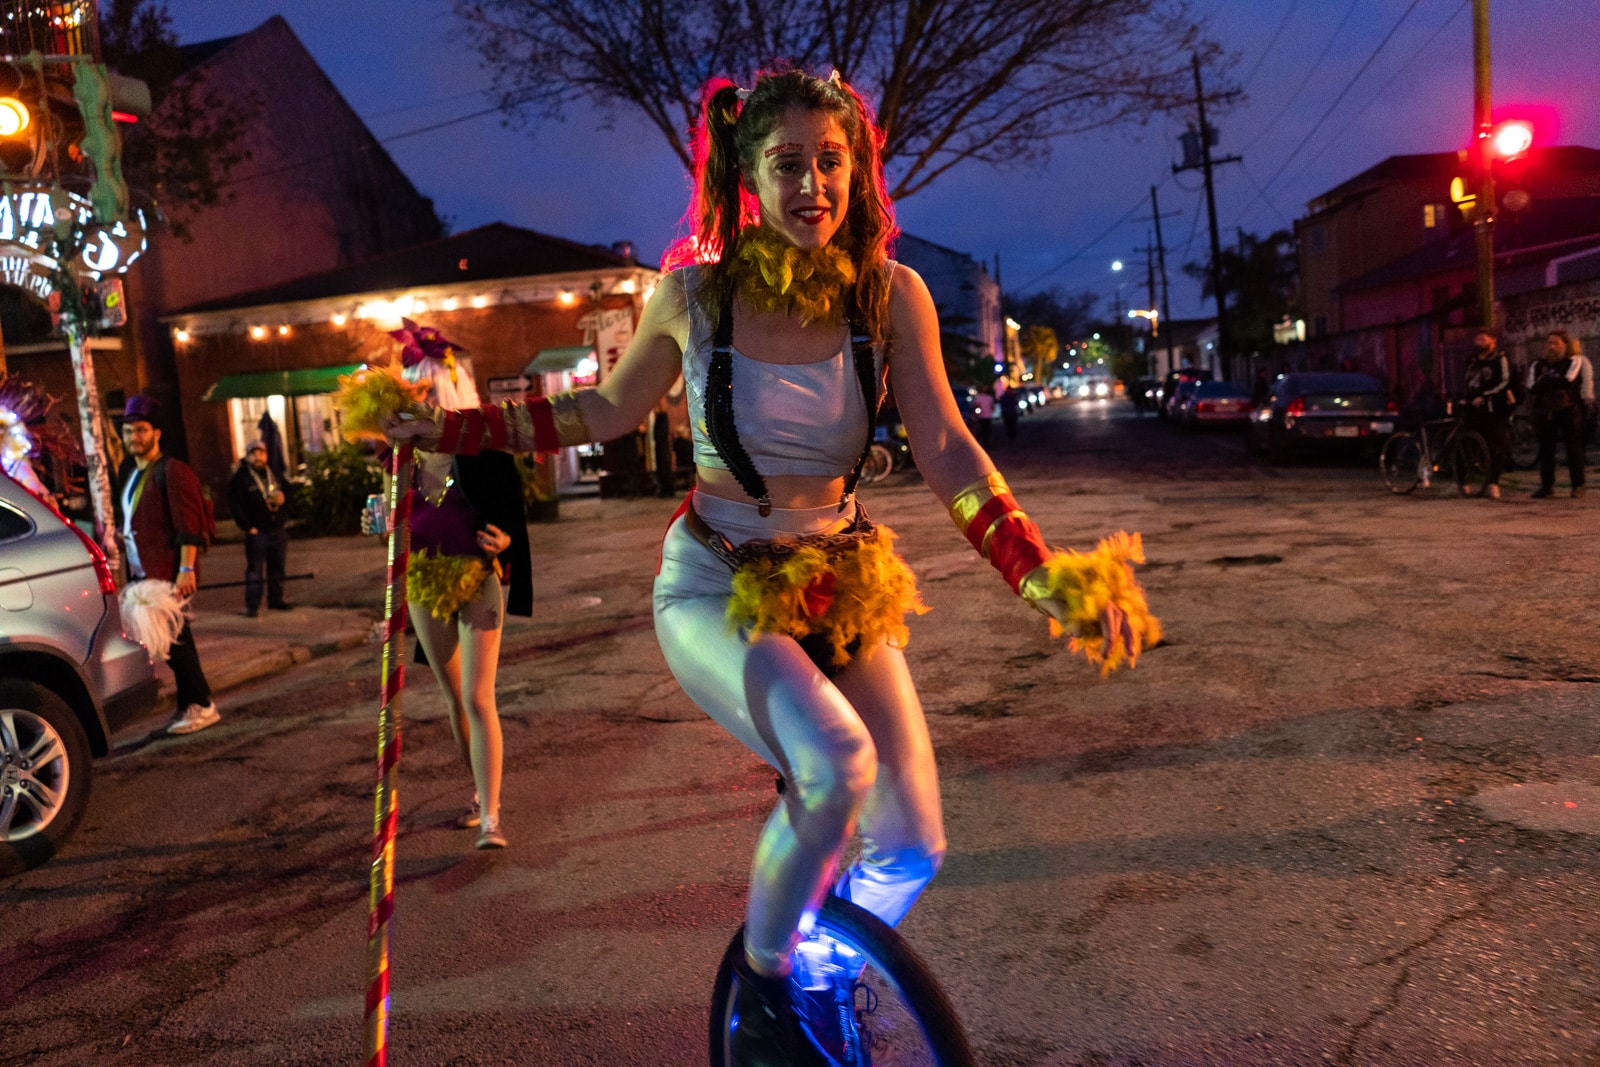 Girl riding a unicycle with a feathered fanny pack during Mardi Gras in New Orleans